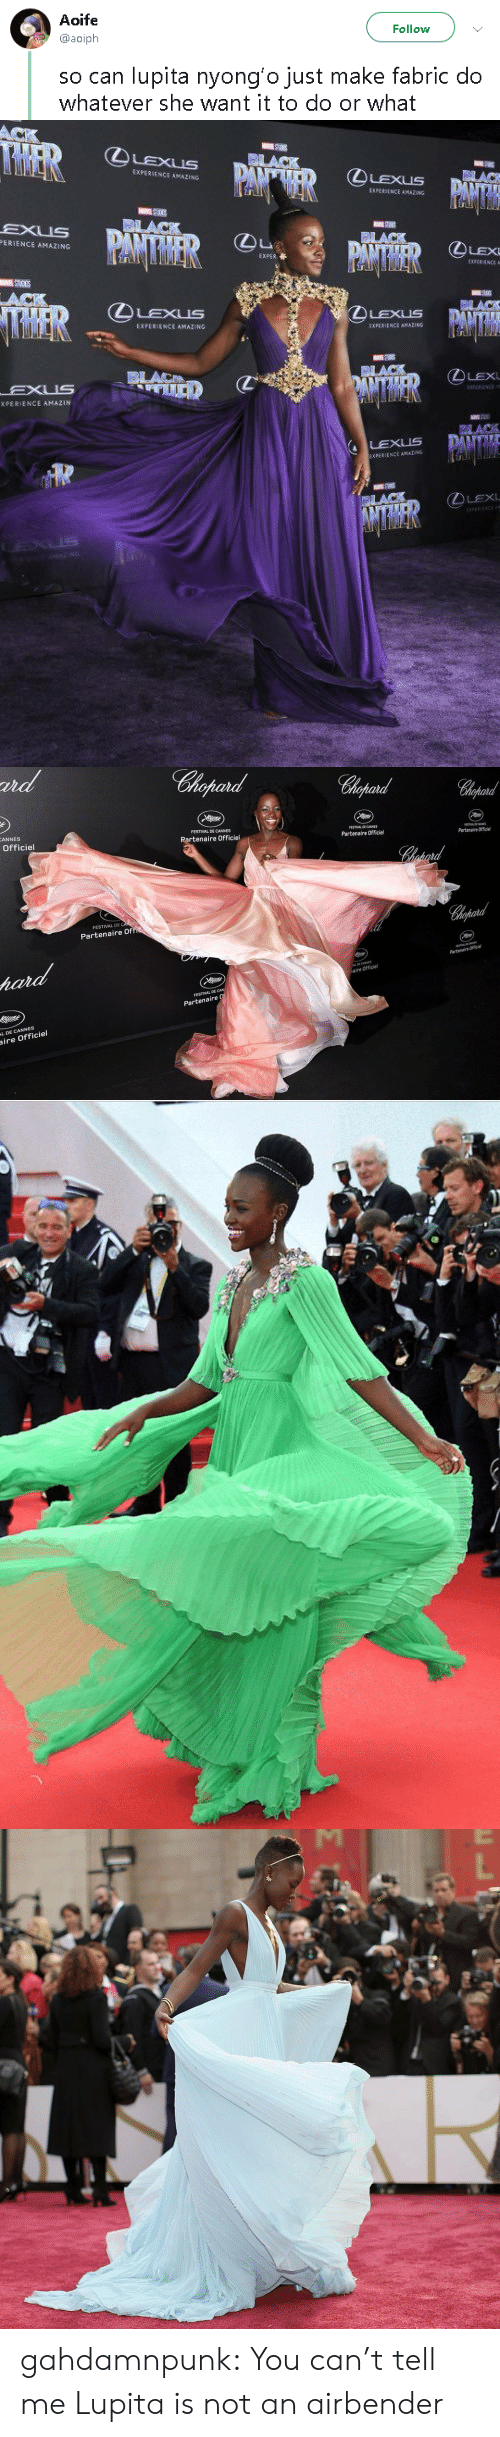 Amazin: Aoife  @aoiph  Follow  so can lupita nyong'o just make fabric do  whatever she want it to do or what   IXPERIENCE AMAZING  PERIENCE AMAZING  LEX  E XPE  BLAC  ④LExus  LEXUS  鉌HRIENCE AMAZING  LEX  EXUS  XPERIENCE AMAZIN  DLACK  LEXUS   ut  ANNES  Officiel  FESTIVAL DE CANNES  Partenaire Officiel  FESTIVAL DE CANNES  Partenaire Officiel  ESTINAL DE CANNES  Partenaire Officiel  FESTIVAL  DE  Partenaire Of  Partenaire Officie  A DE CANNES  aire Officiel  FESTIVAL DE CAN  Partenaire  L DE CANNES  ire Officiel gahdamnpunk: You can't tell me Lupita is not an airbender